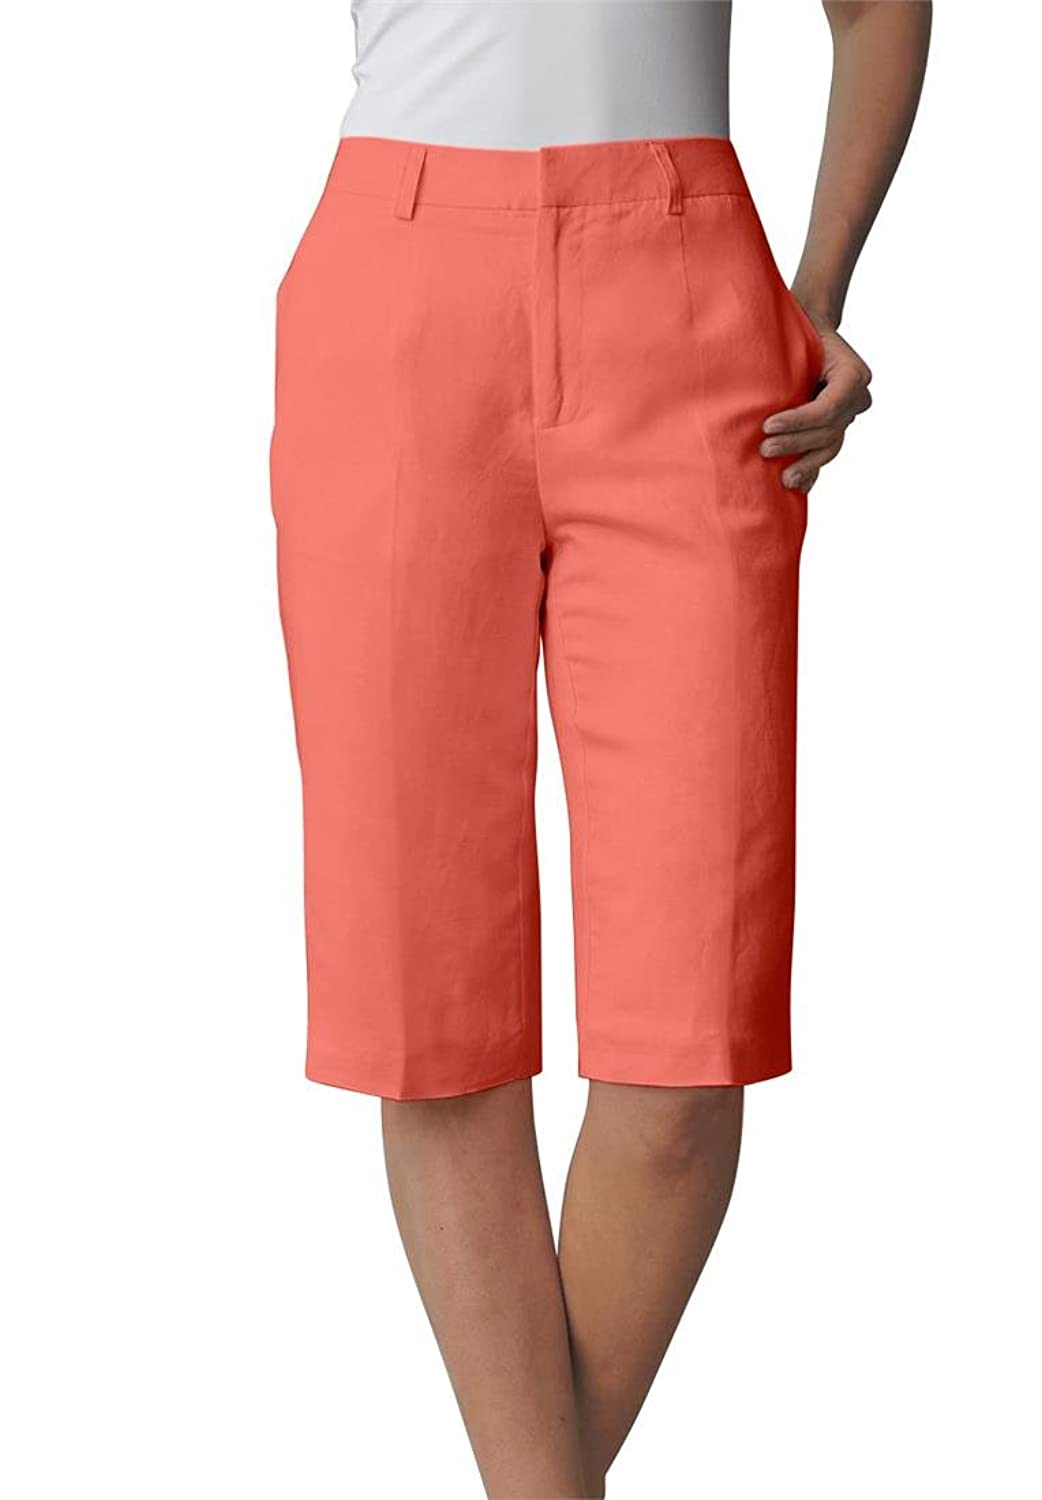 Plus Size Long Shorts s s catalog seniors